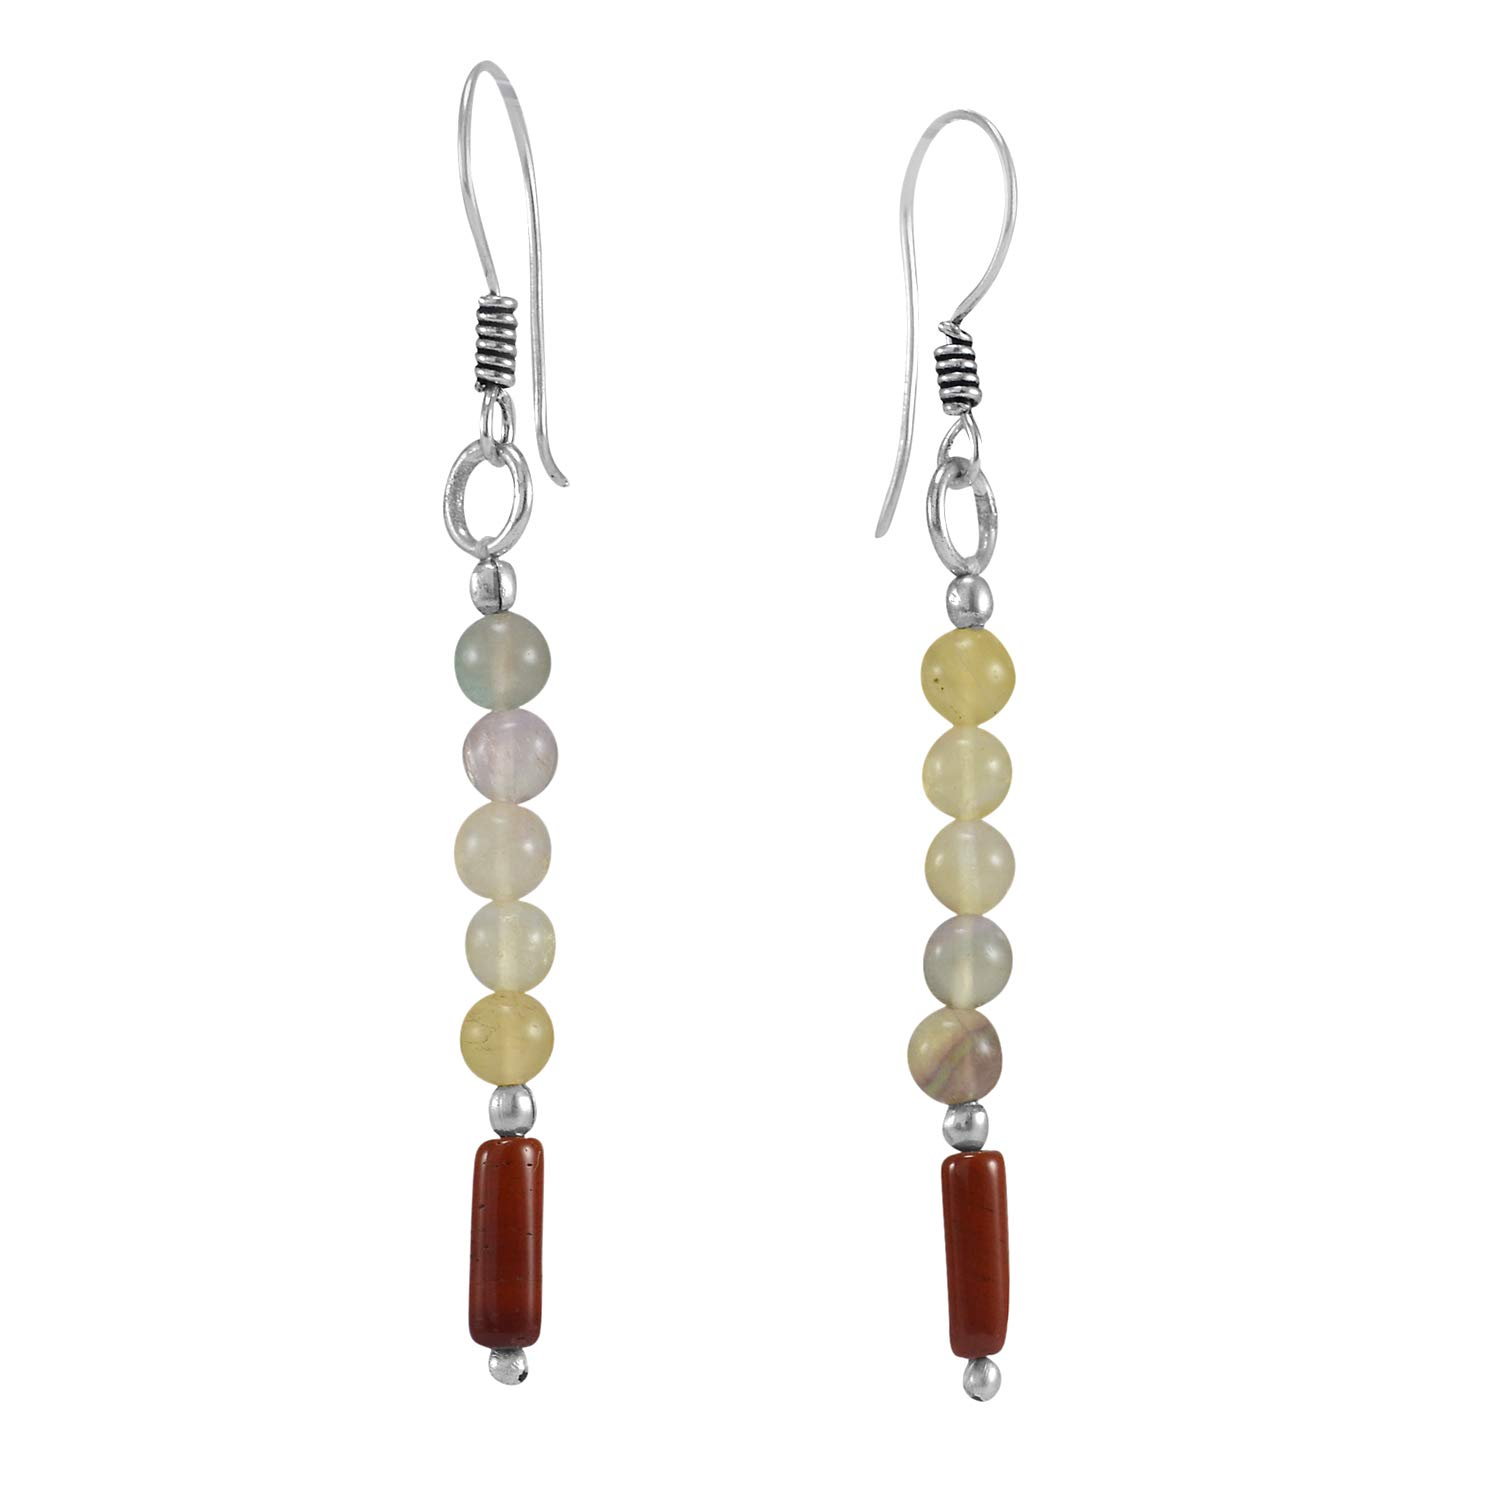 Wire-wrapped Dangle Earring Jaipur Rajasthan India Handmade Jewelry Manufacturer Round Beaded Citrine /& Jasper 925 Silver Plated